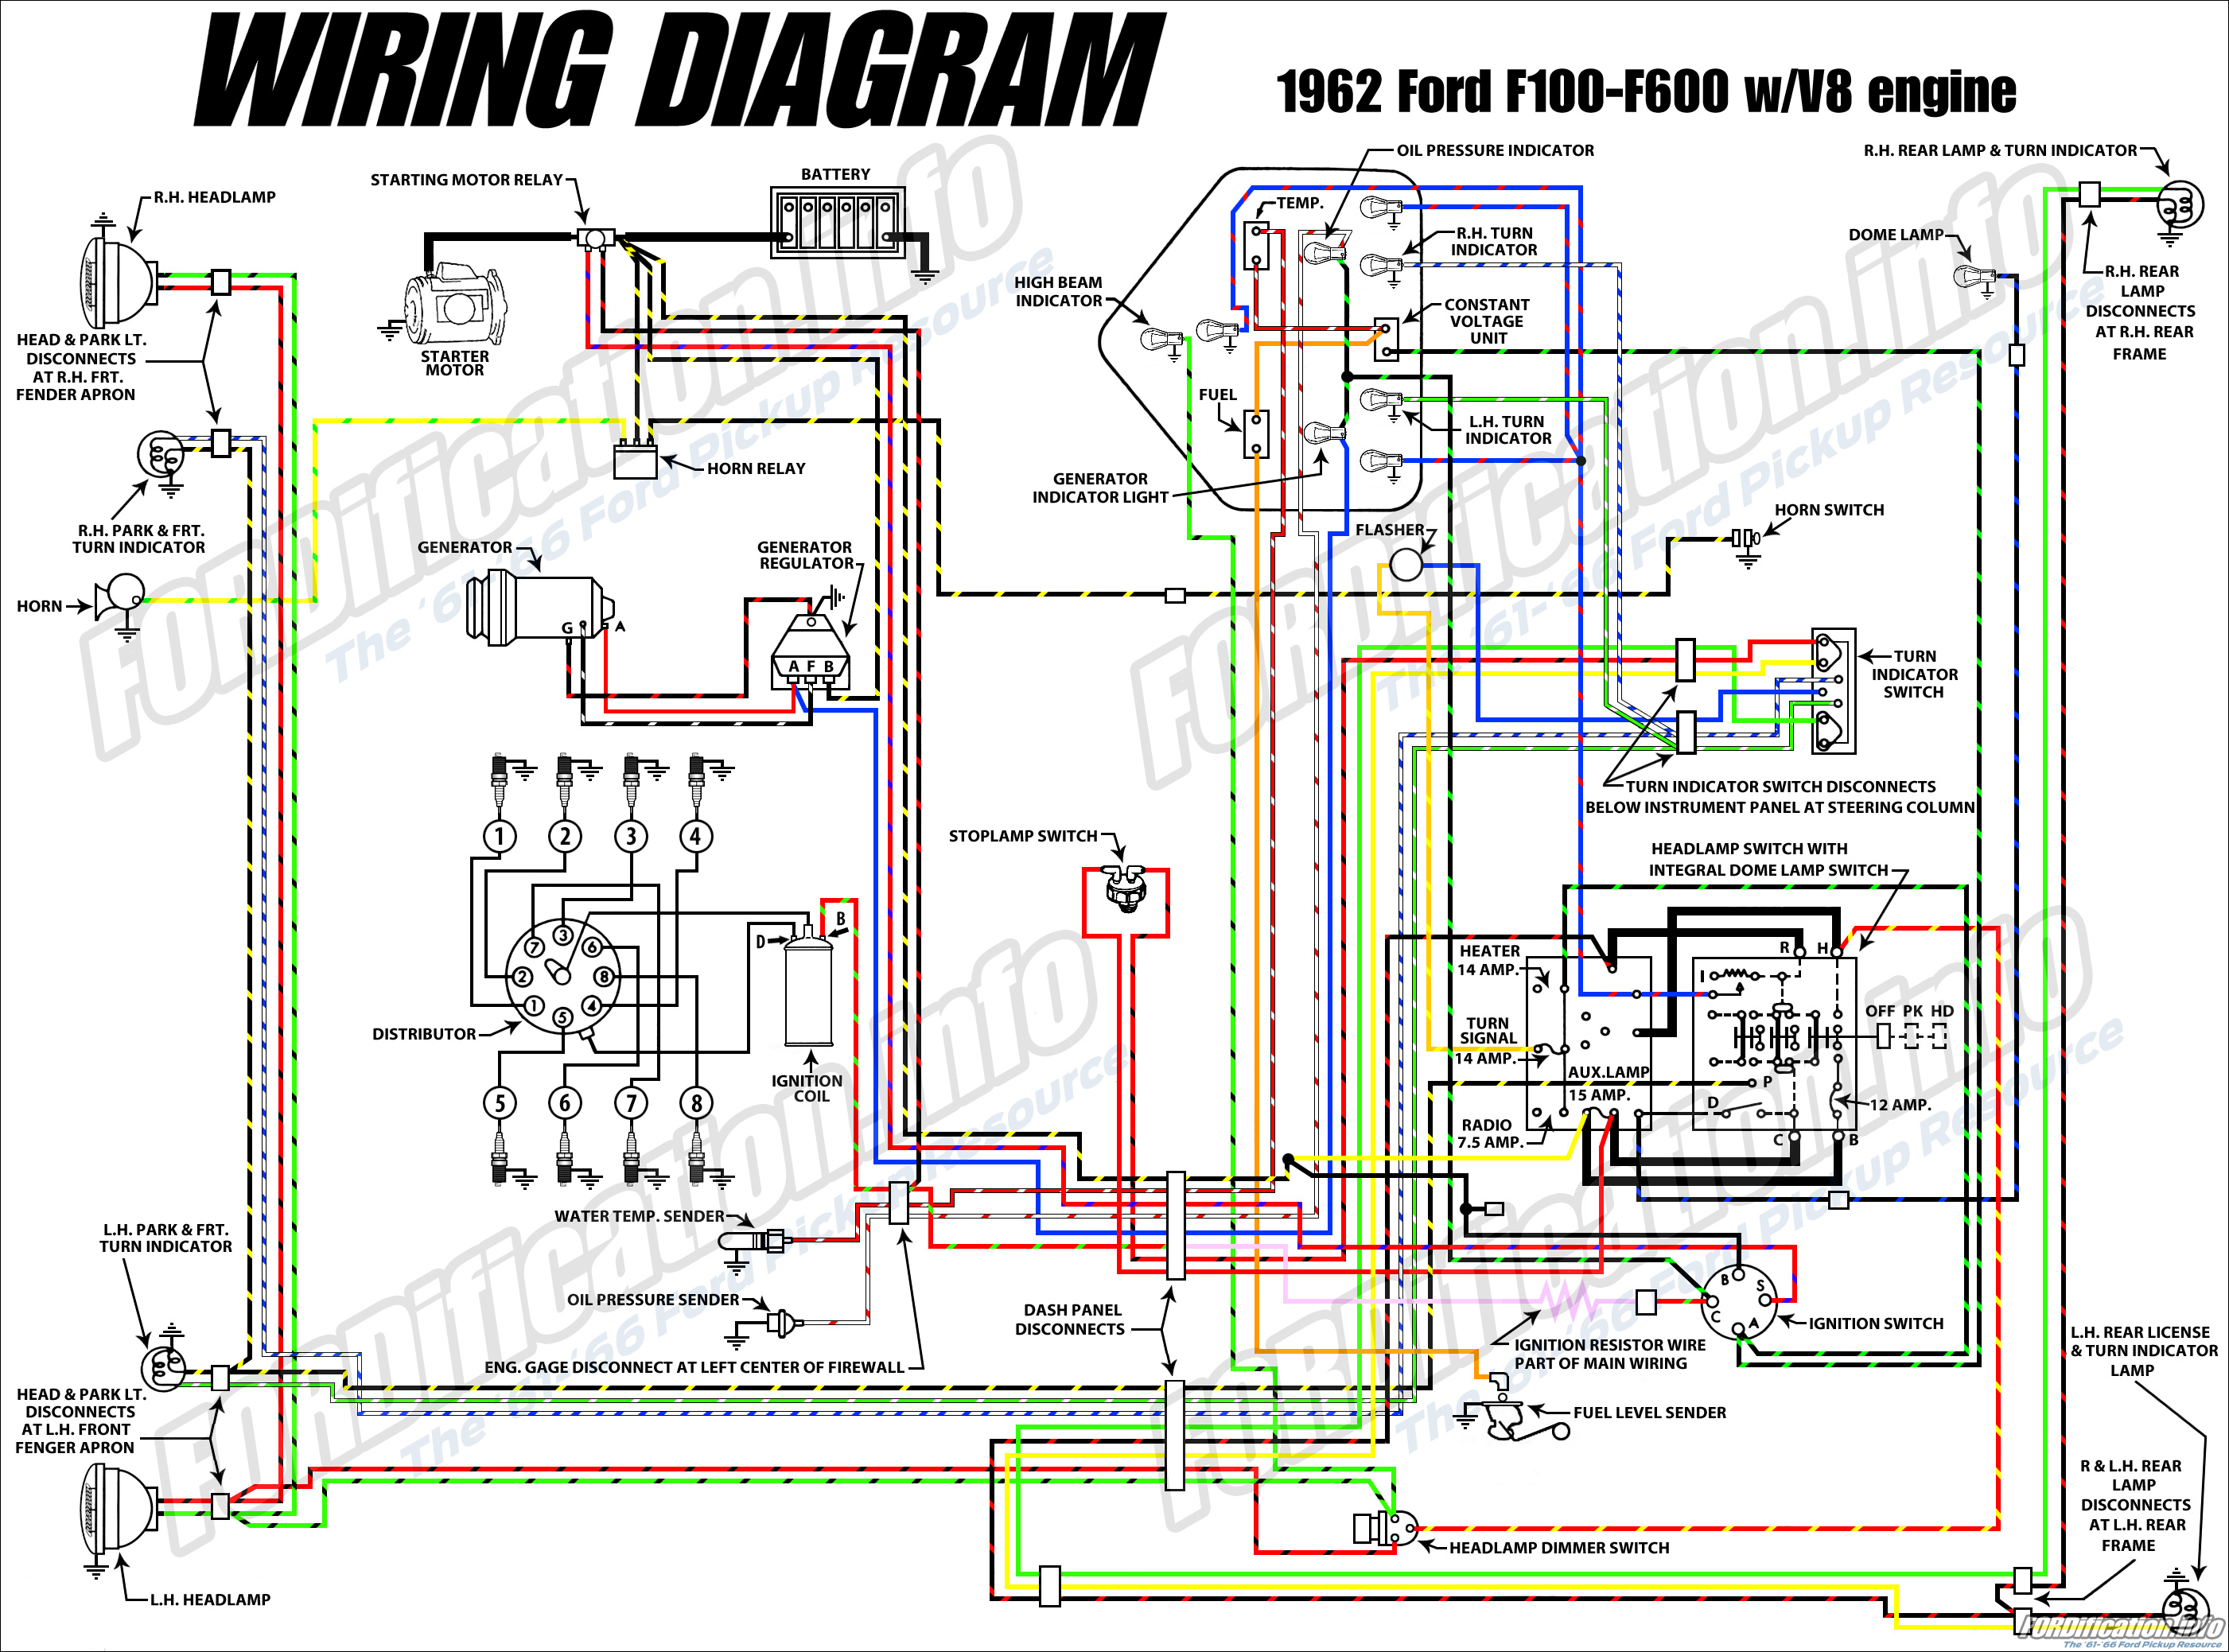 1962fordtruck_masterwiring 1962 ford truck wiring diagrams fordification info the '61 '66 ford truck wiring diagrams at nearapp.co